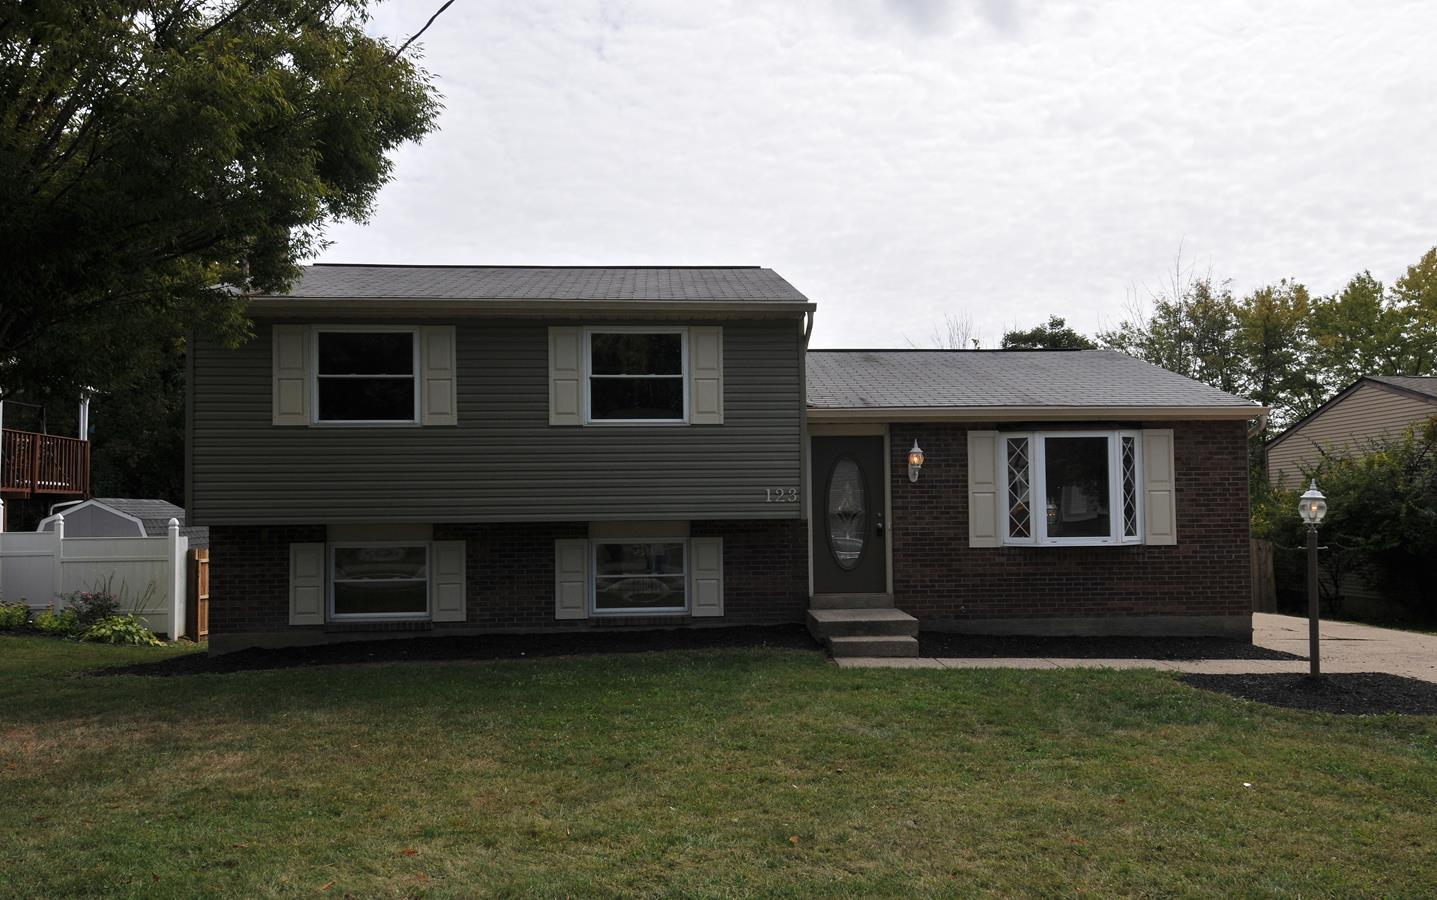 Photo 1 for 123 Idlewood Dr Covington, KY 41017